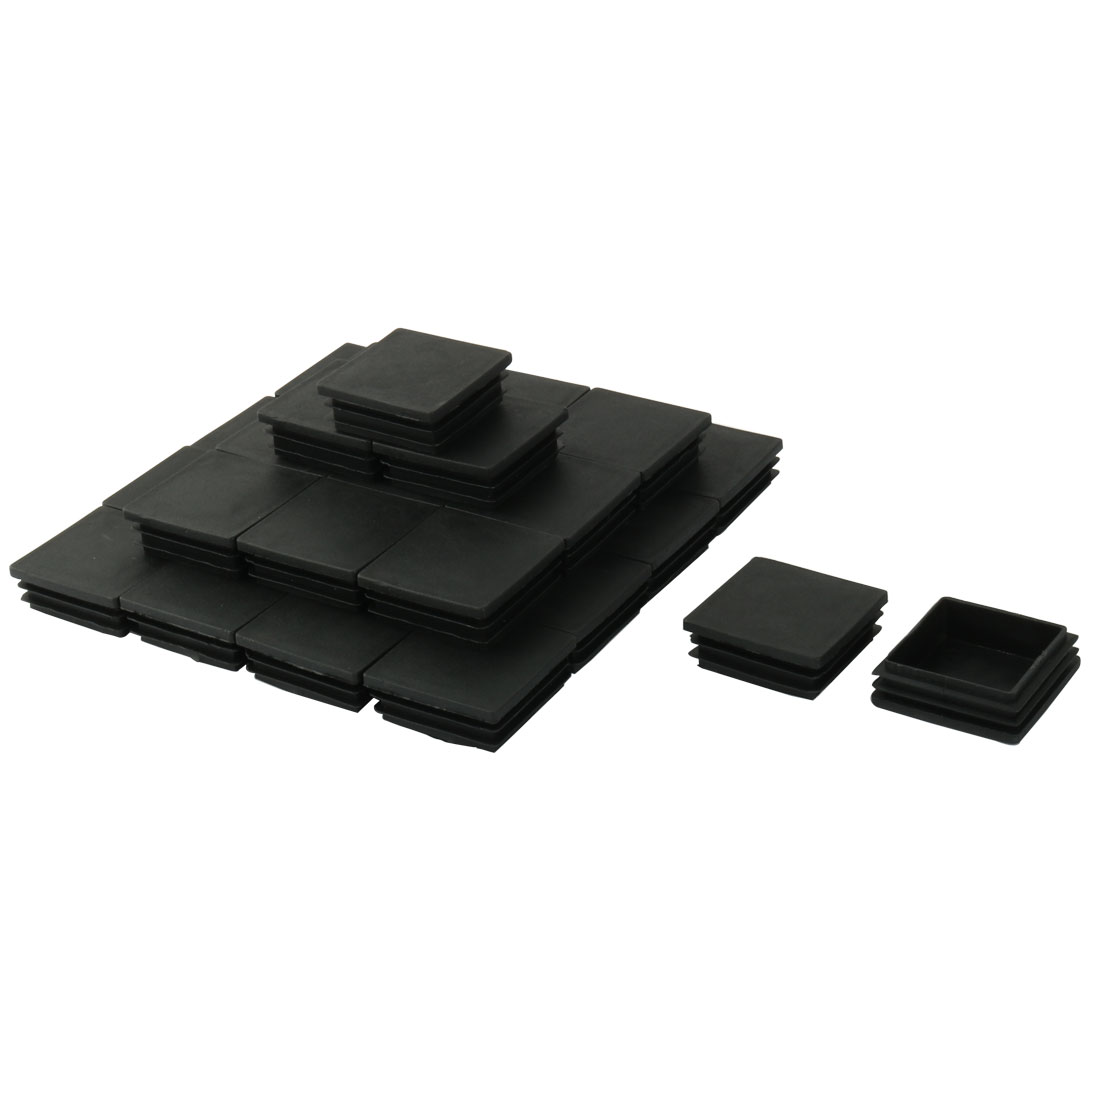 Household Plastic Square Furniture Table Chair Legs Tube Insert Cap Black 30 Pcs